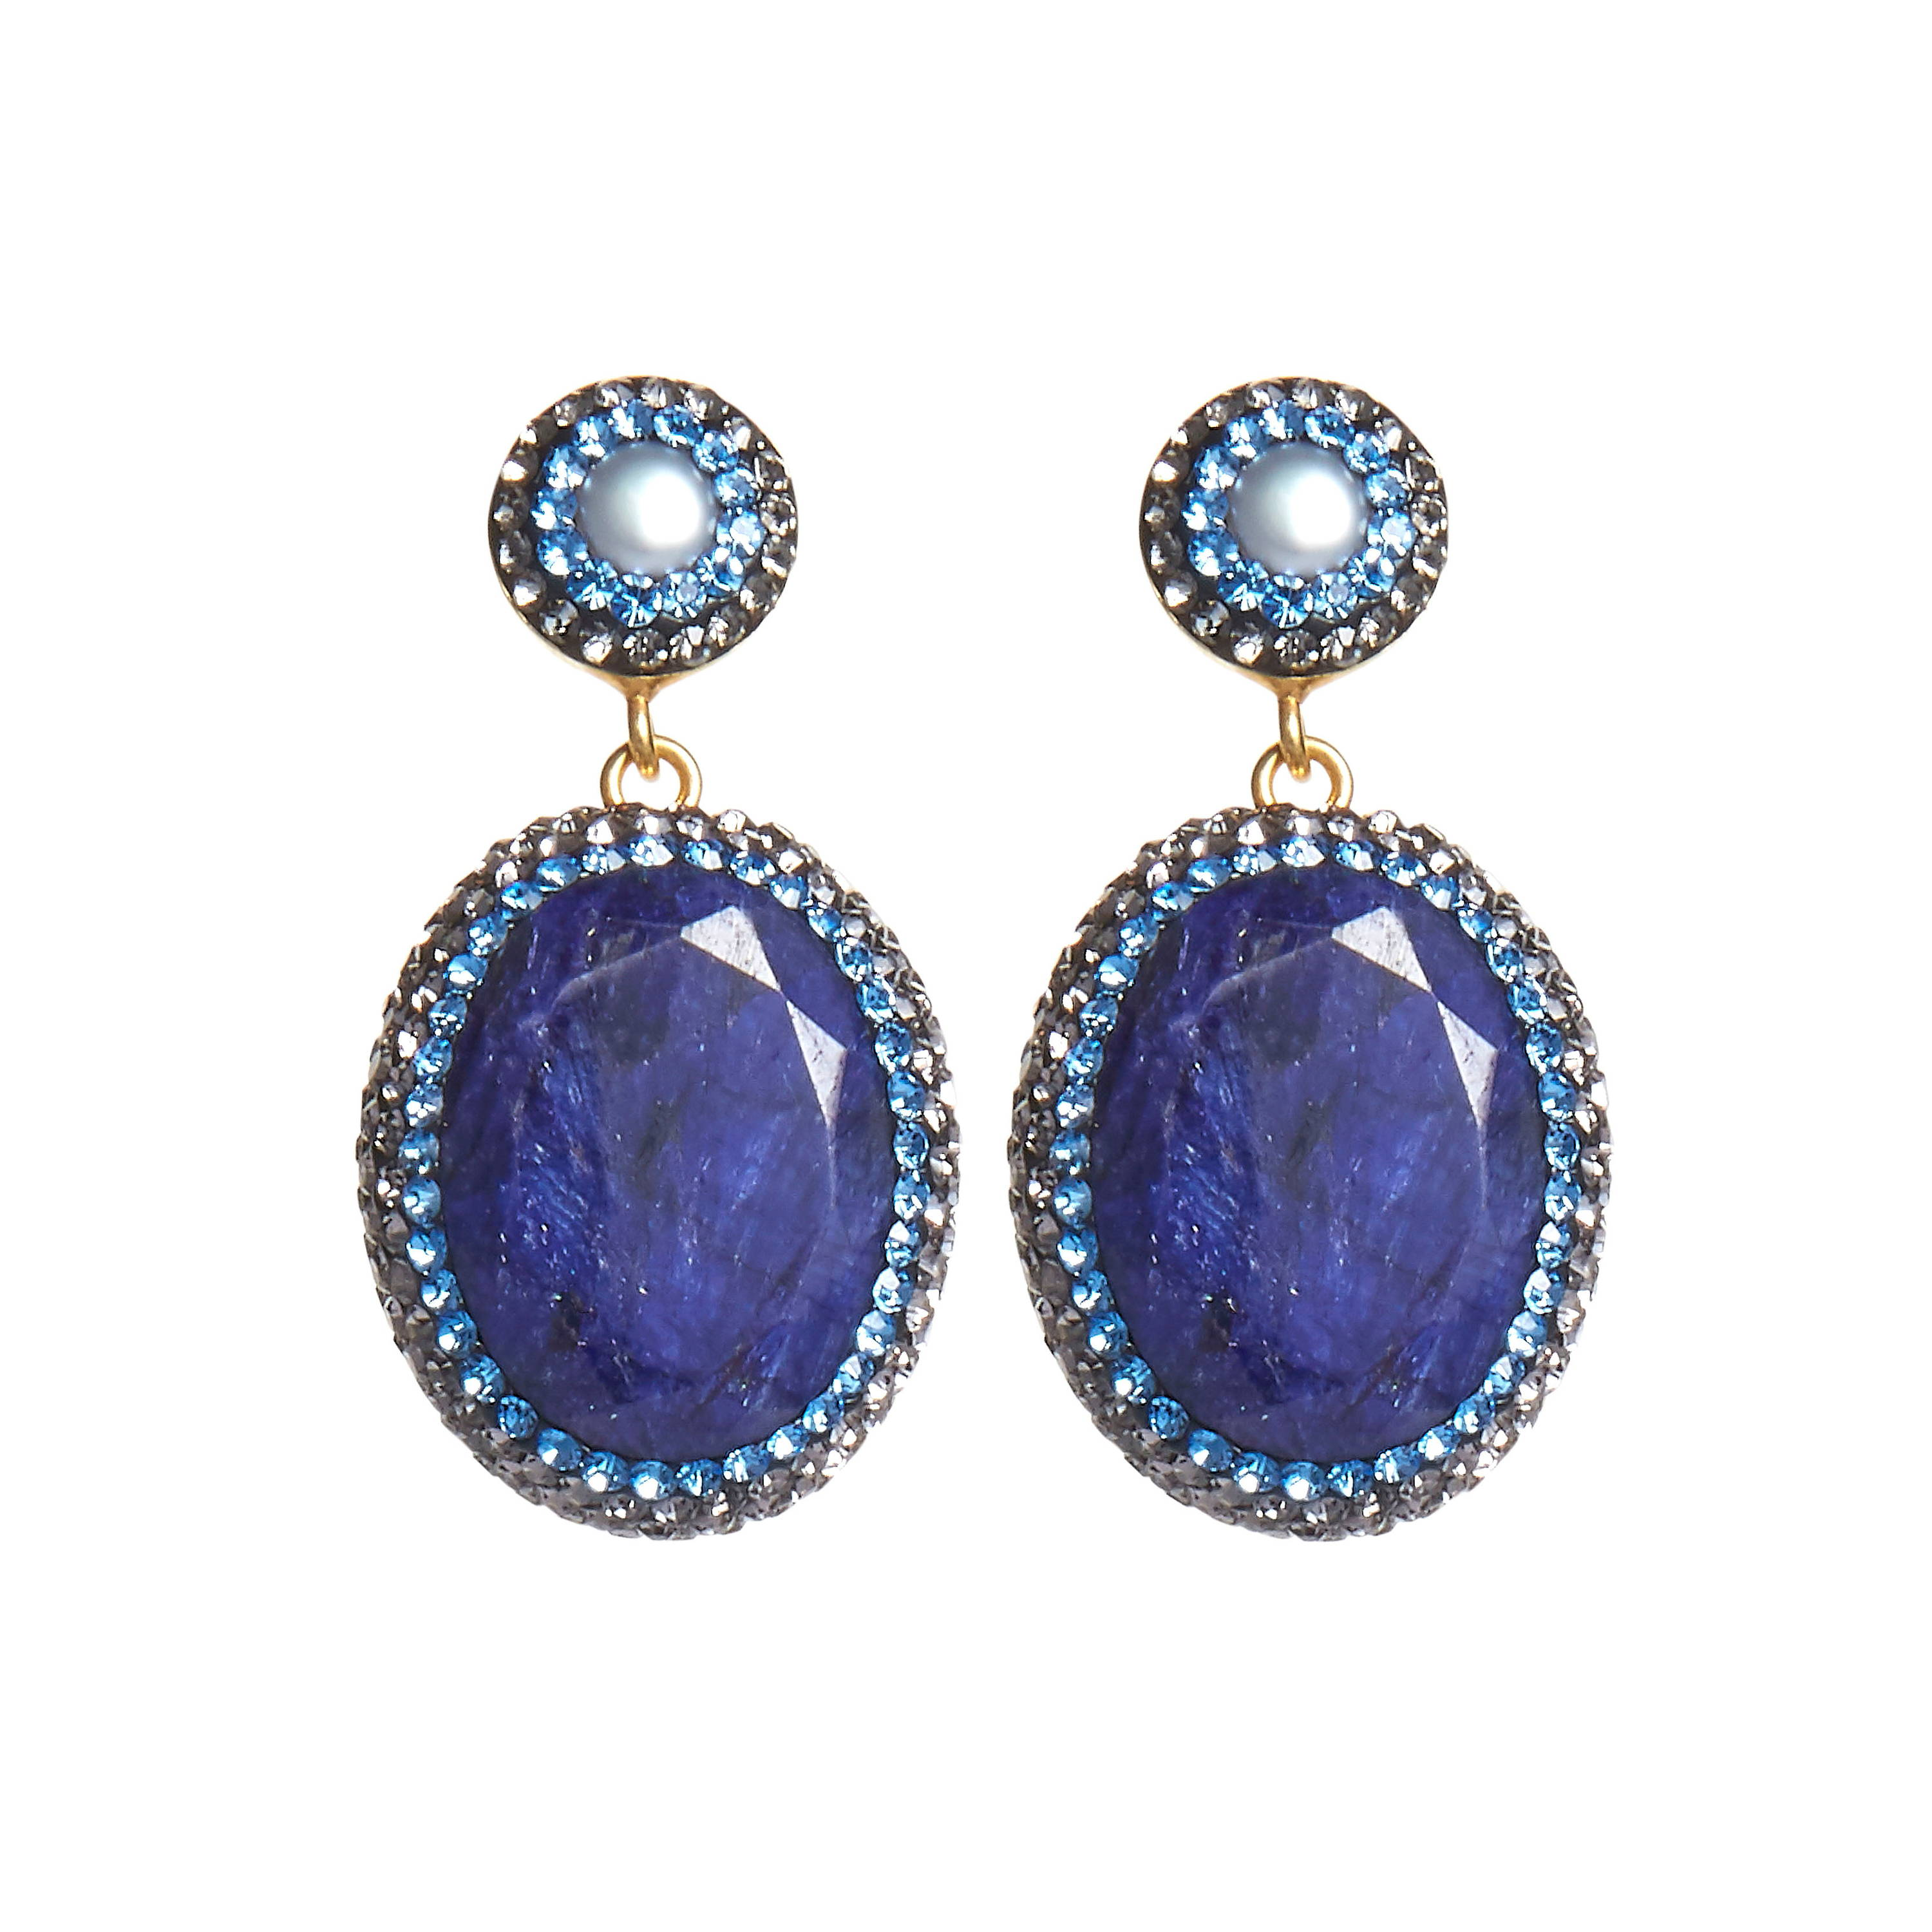 SORU JEWELLERY SAPPHIRE EARRINGS, SORU BLUE STONE EARRINGS